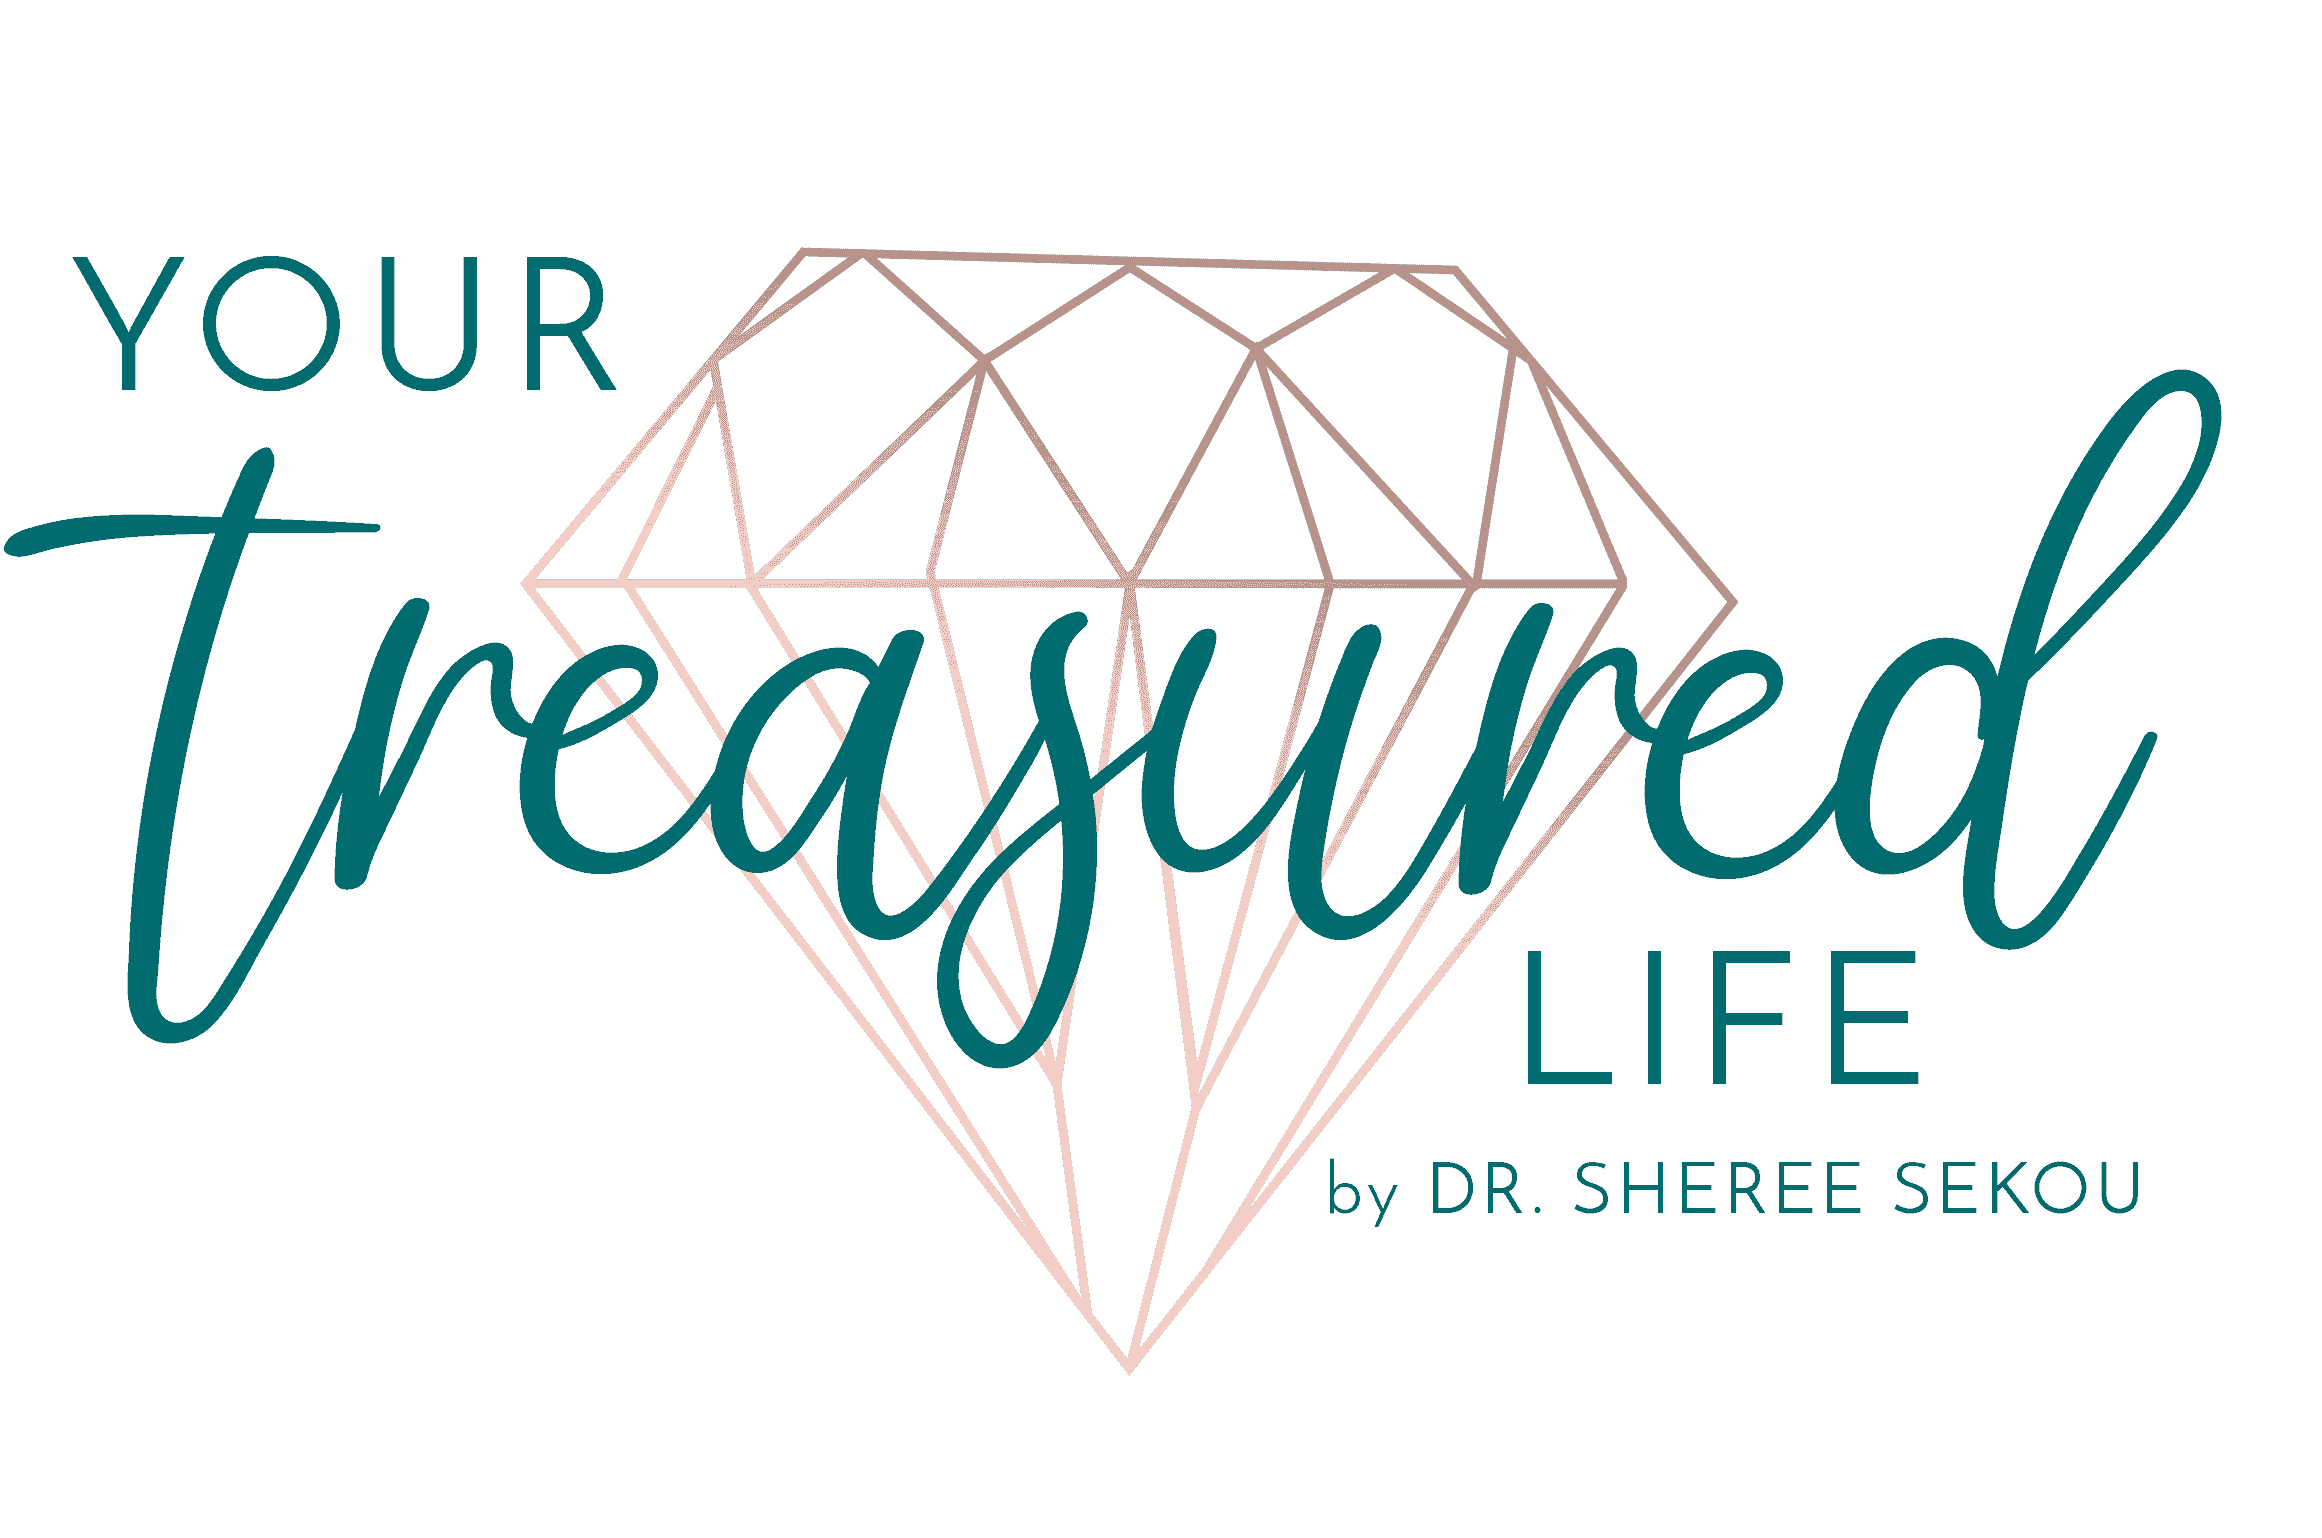 Your Treasured Life by Dr. Sheree Sekou a leadership and lifestyle brand inspiring positive change